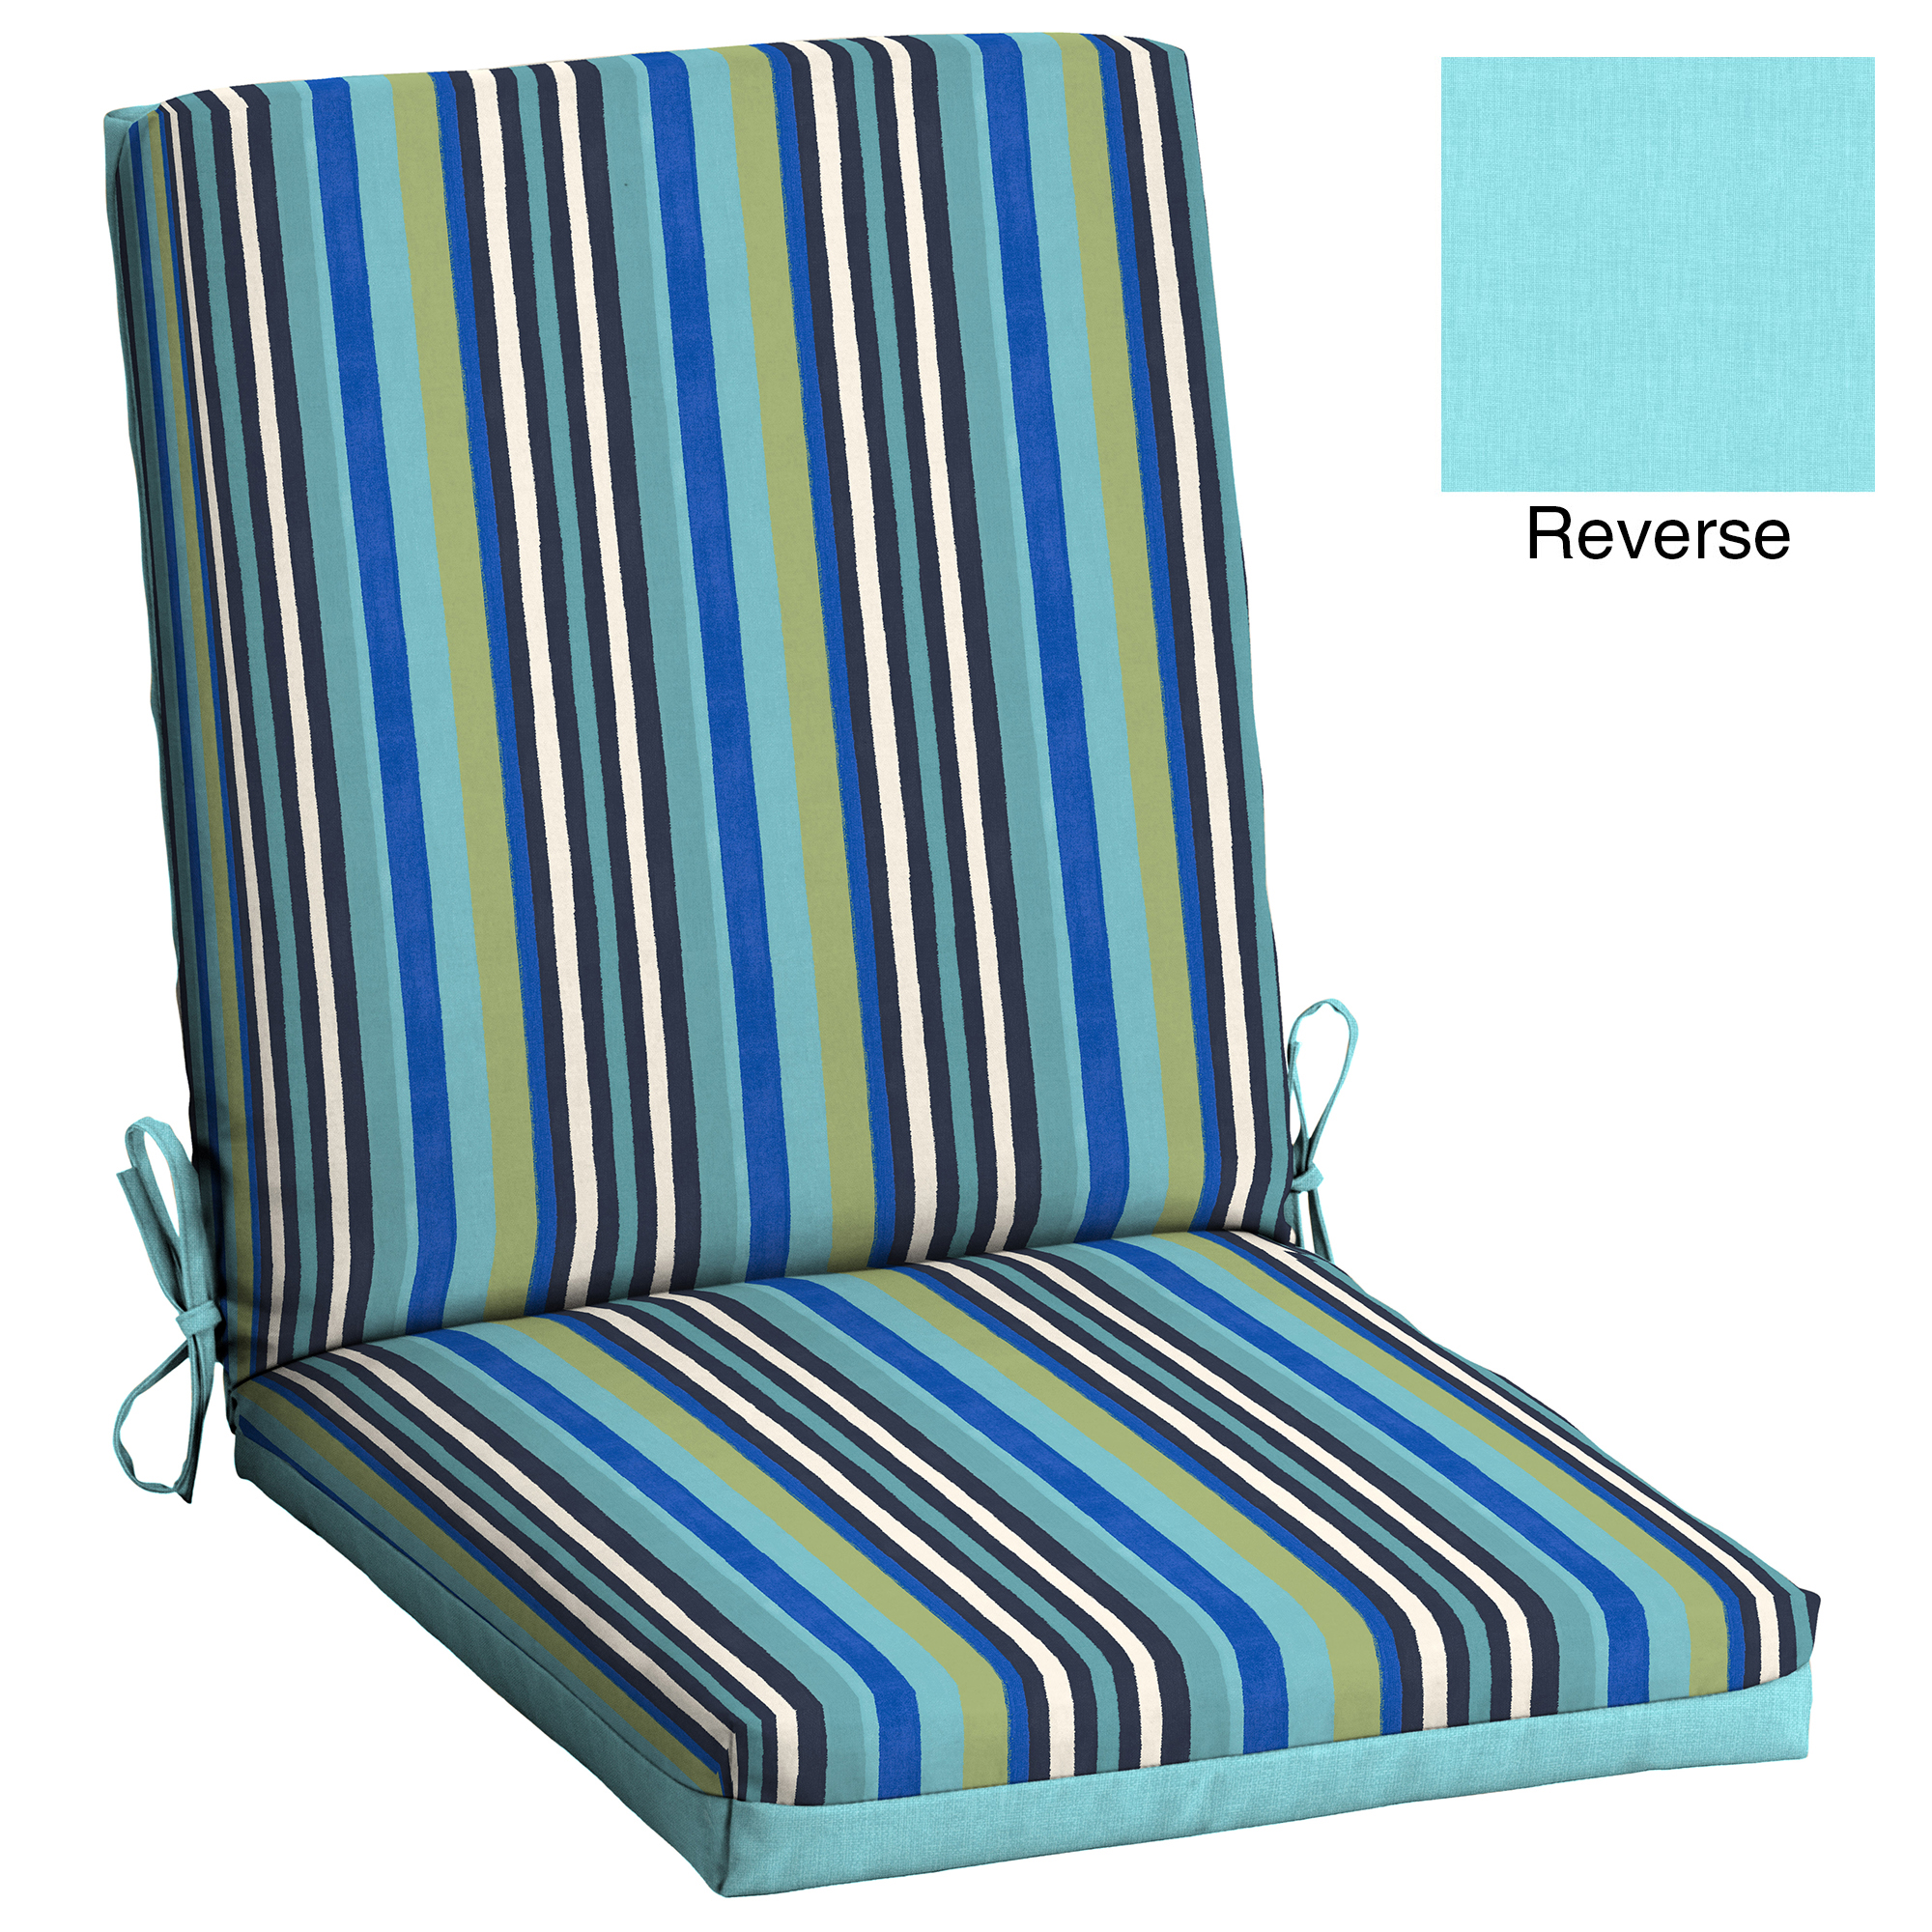 mainstays turquoise stripe 43 x 20 in outdoor patio chair cushion